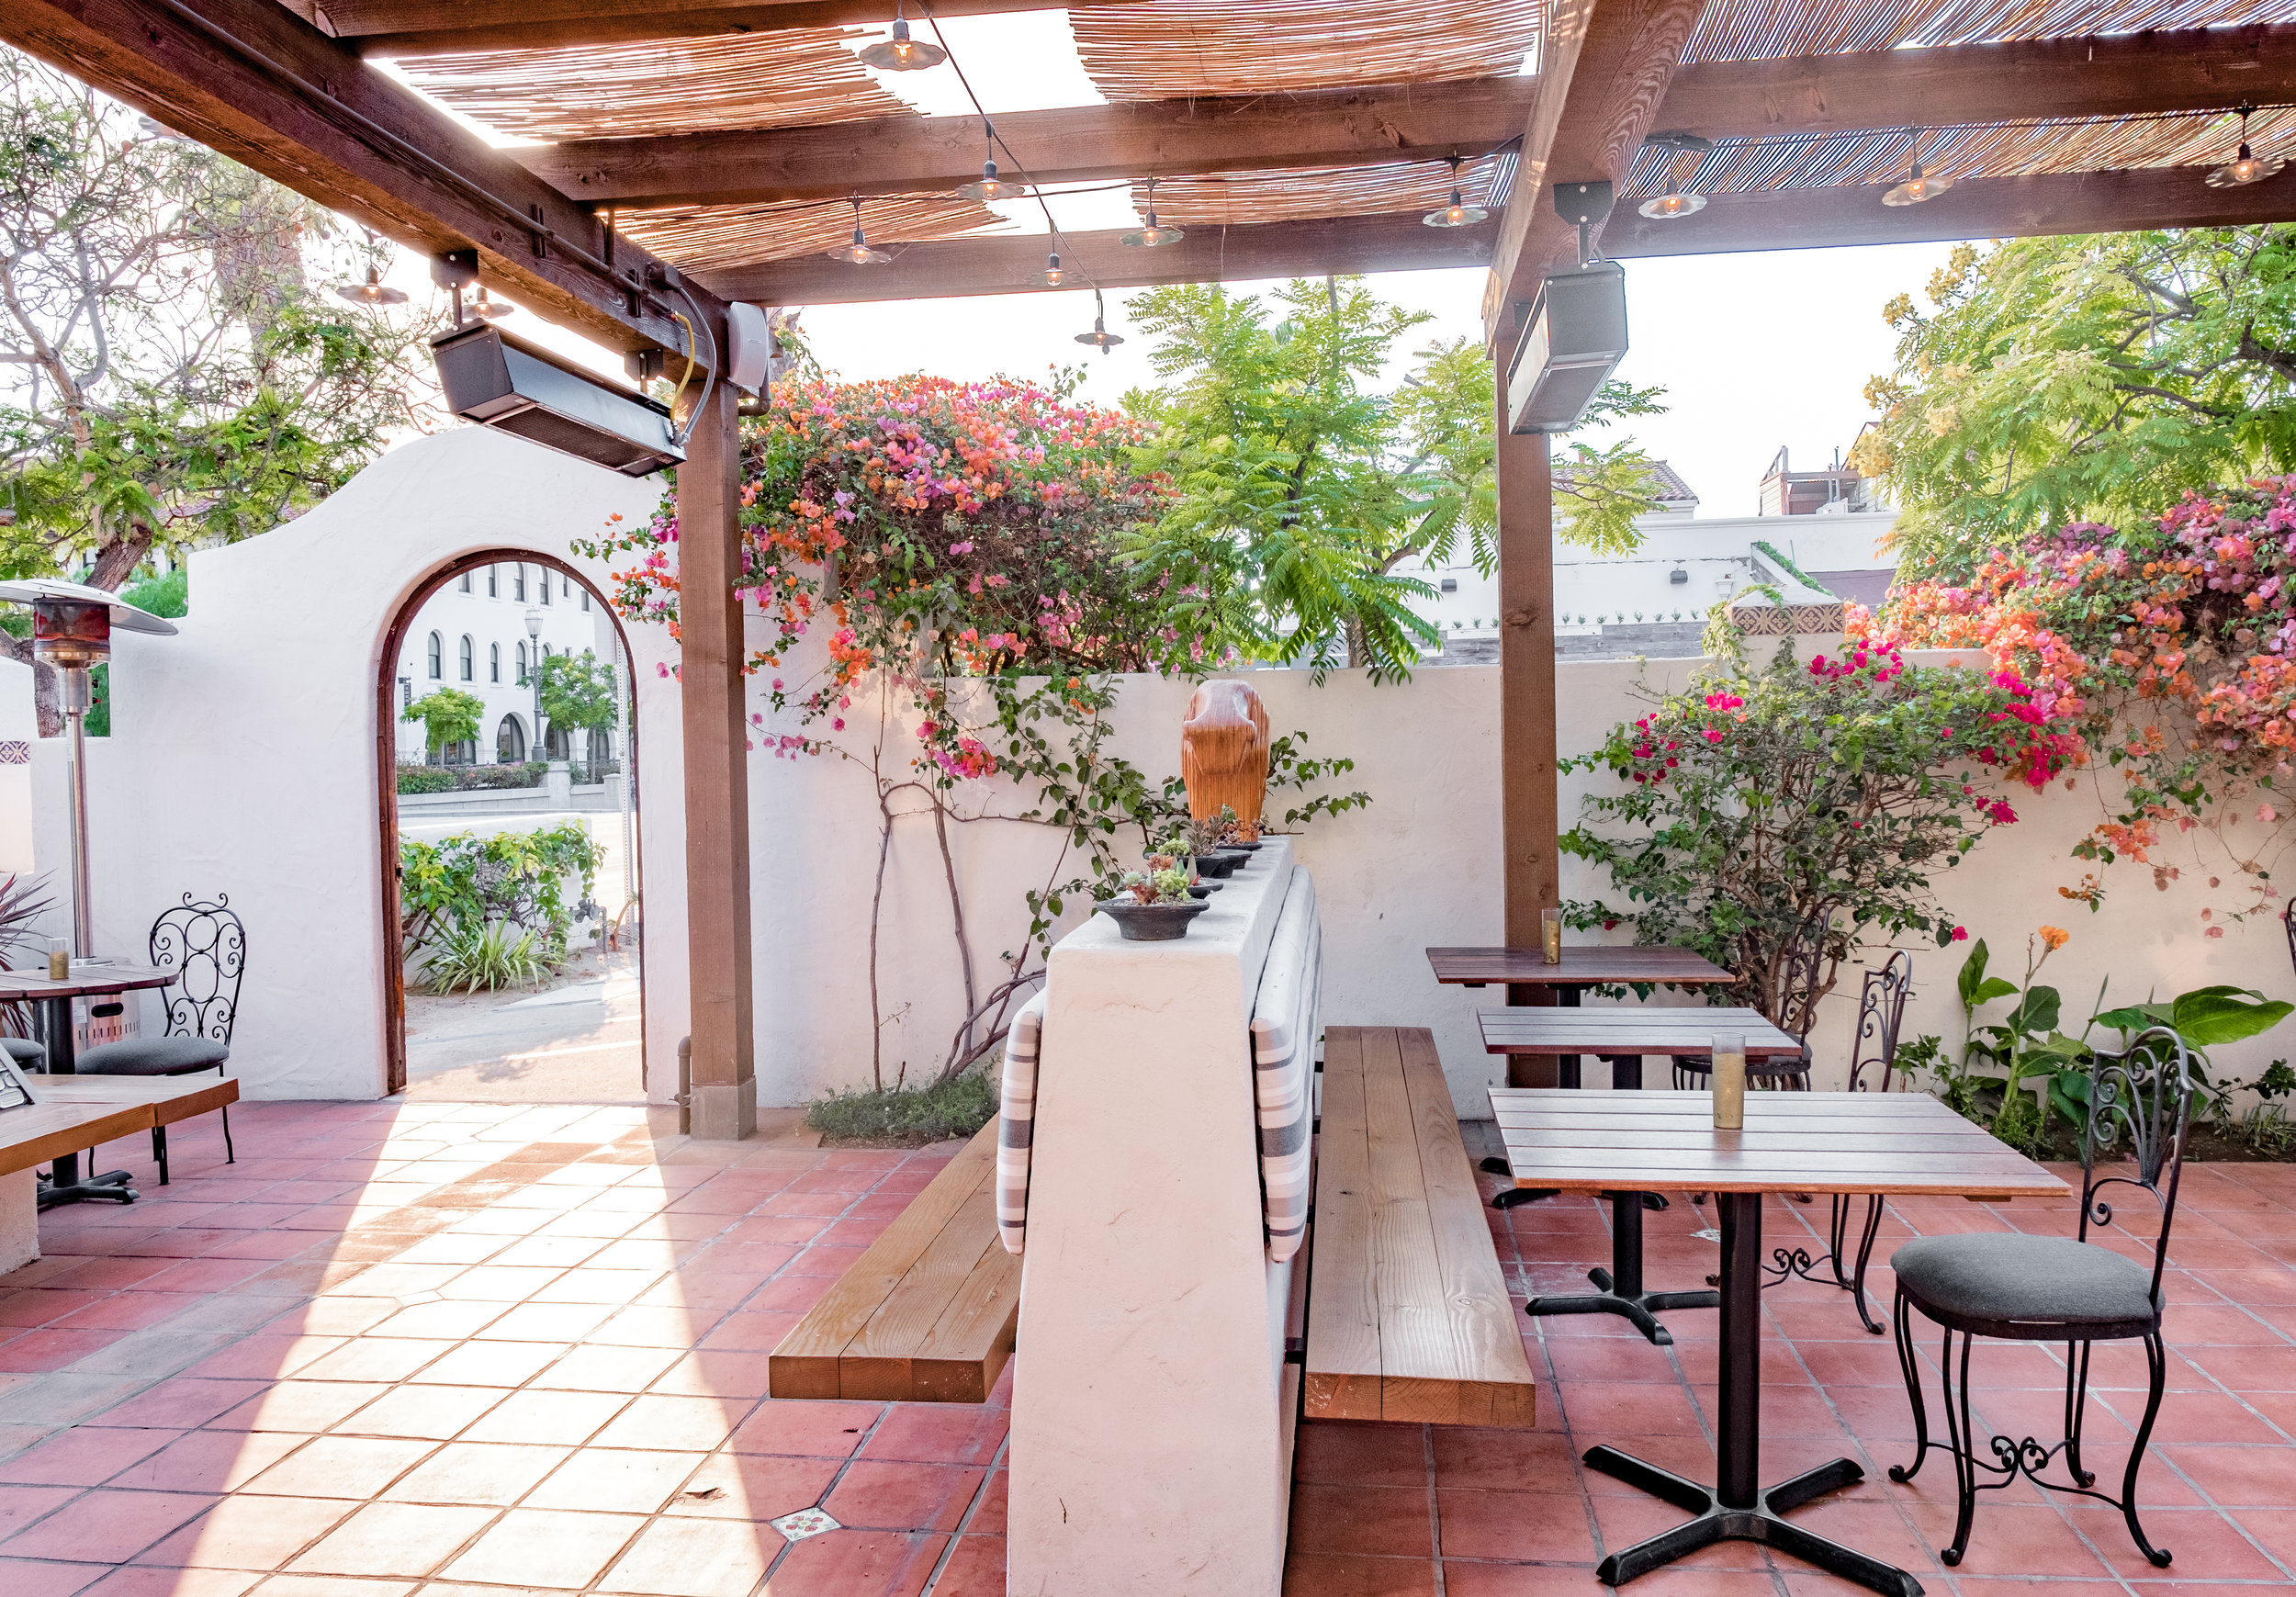 Loquita's outdoor patio